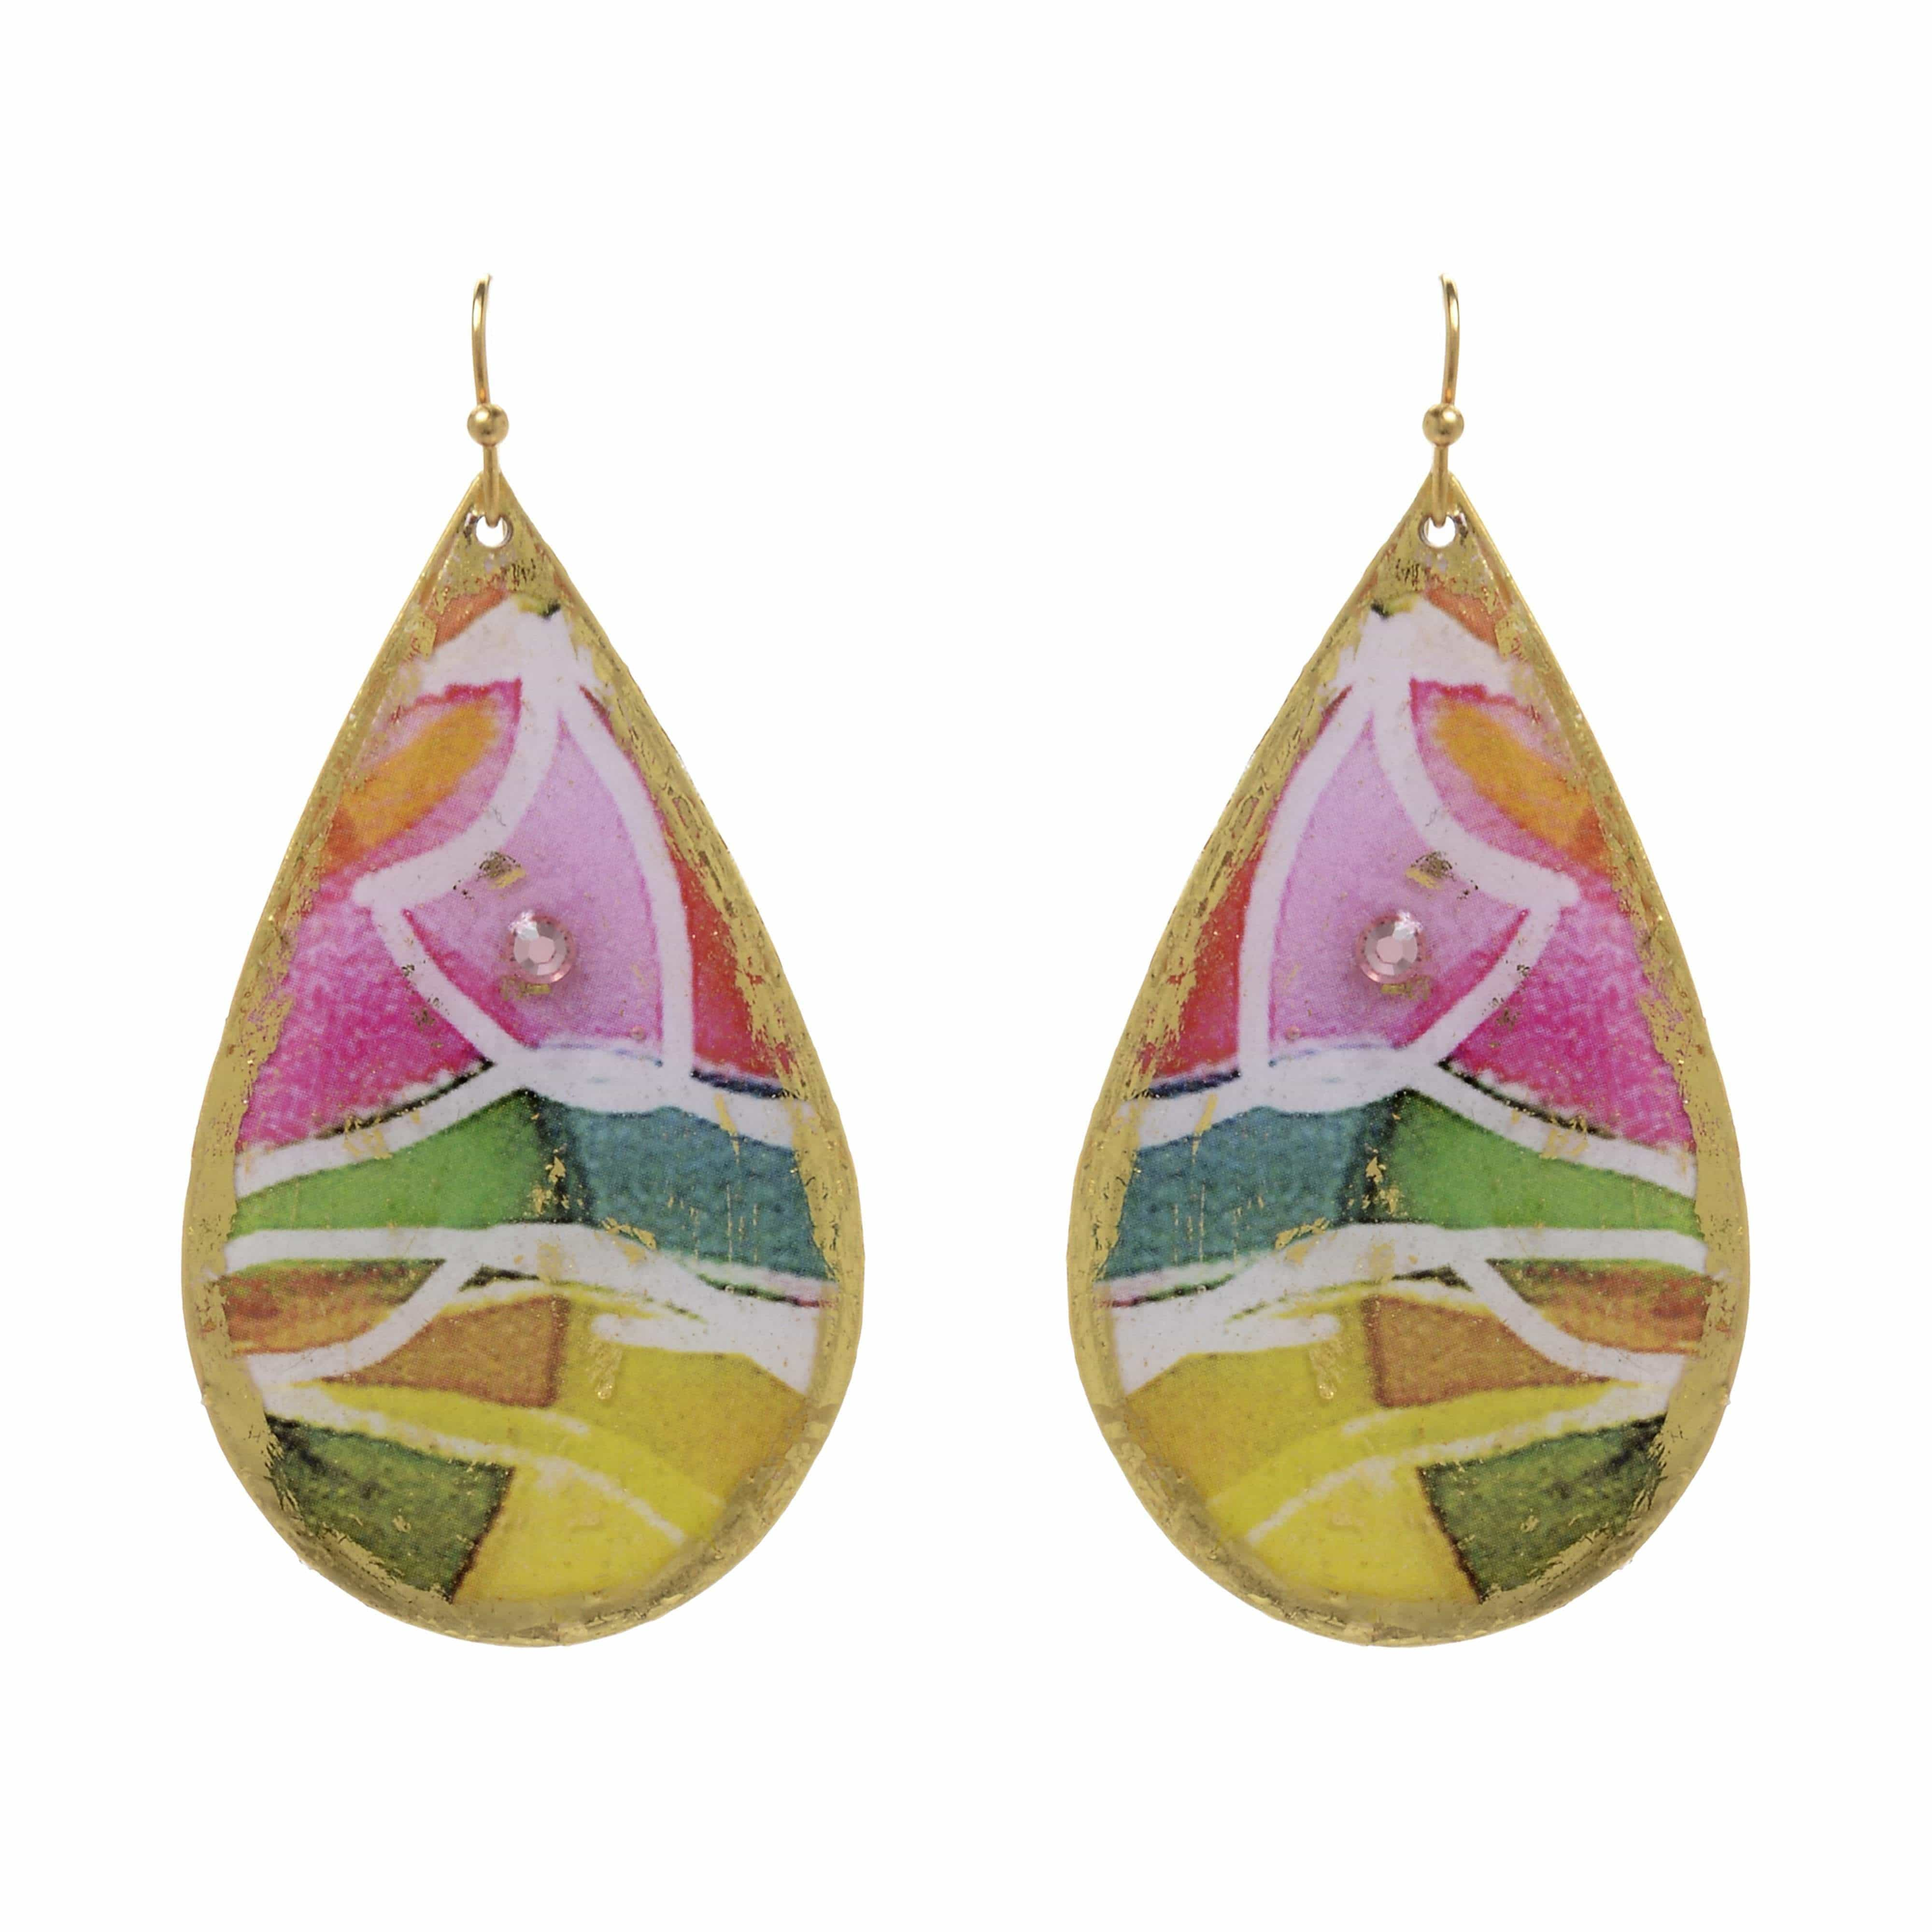 Charleston Gold Teardrop Earrings - MG422-Evocateur-Renee Taylor Gallery